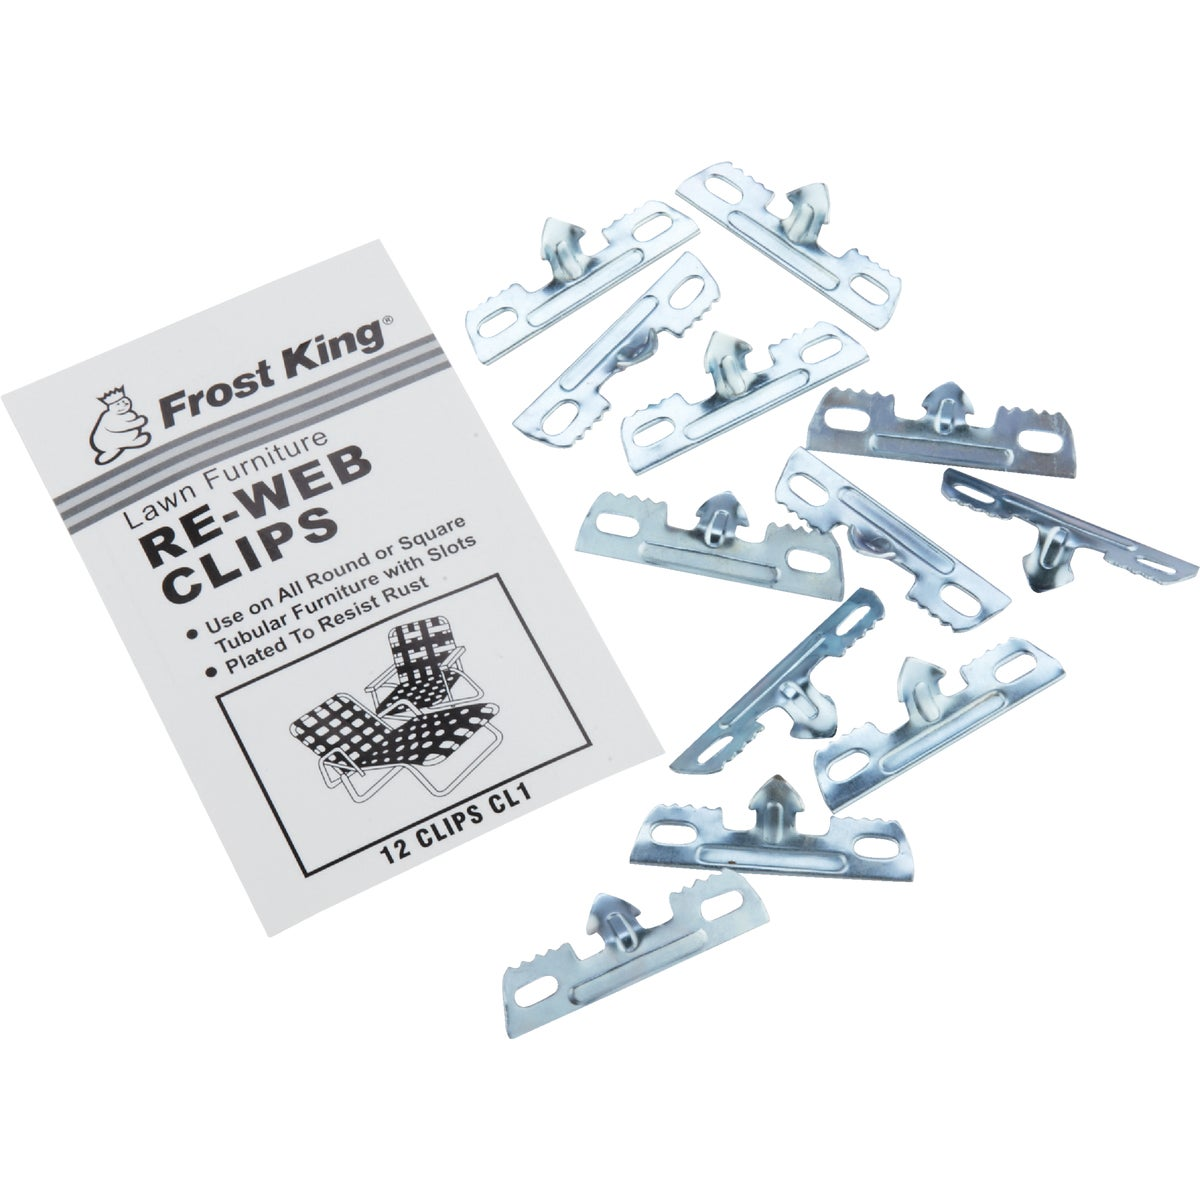 12PK REWEBBING CLIPS - CL1 by Thermwell Prods Co